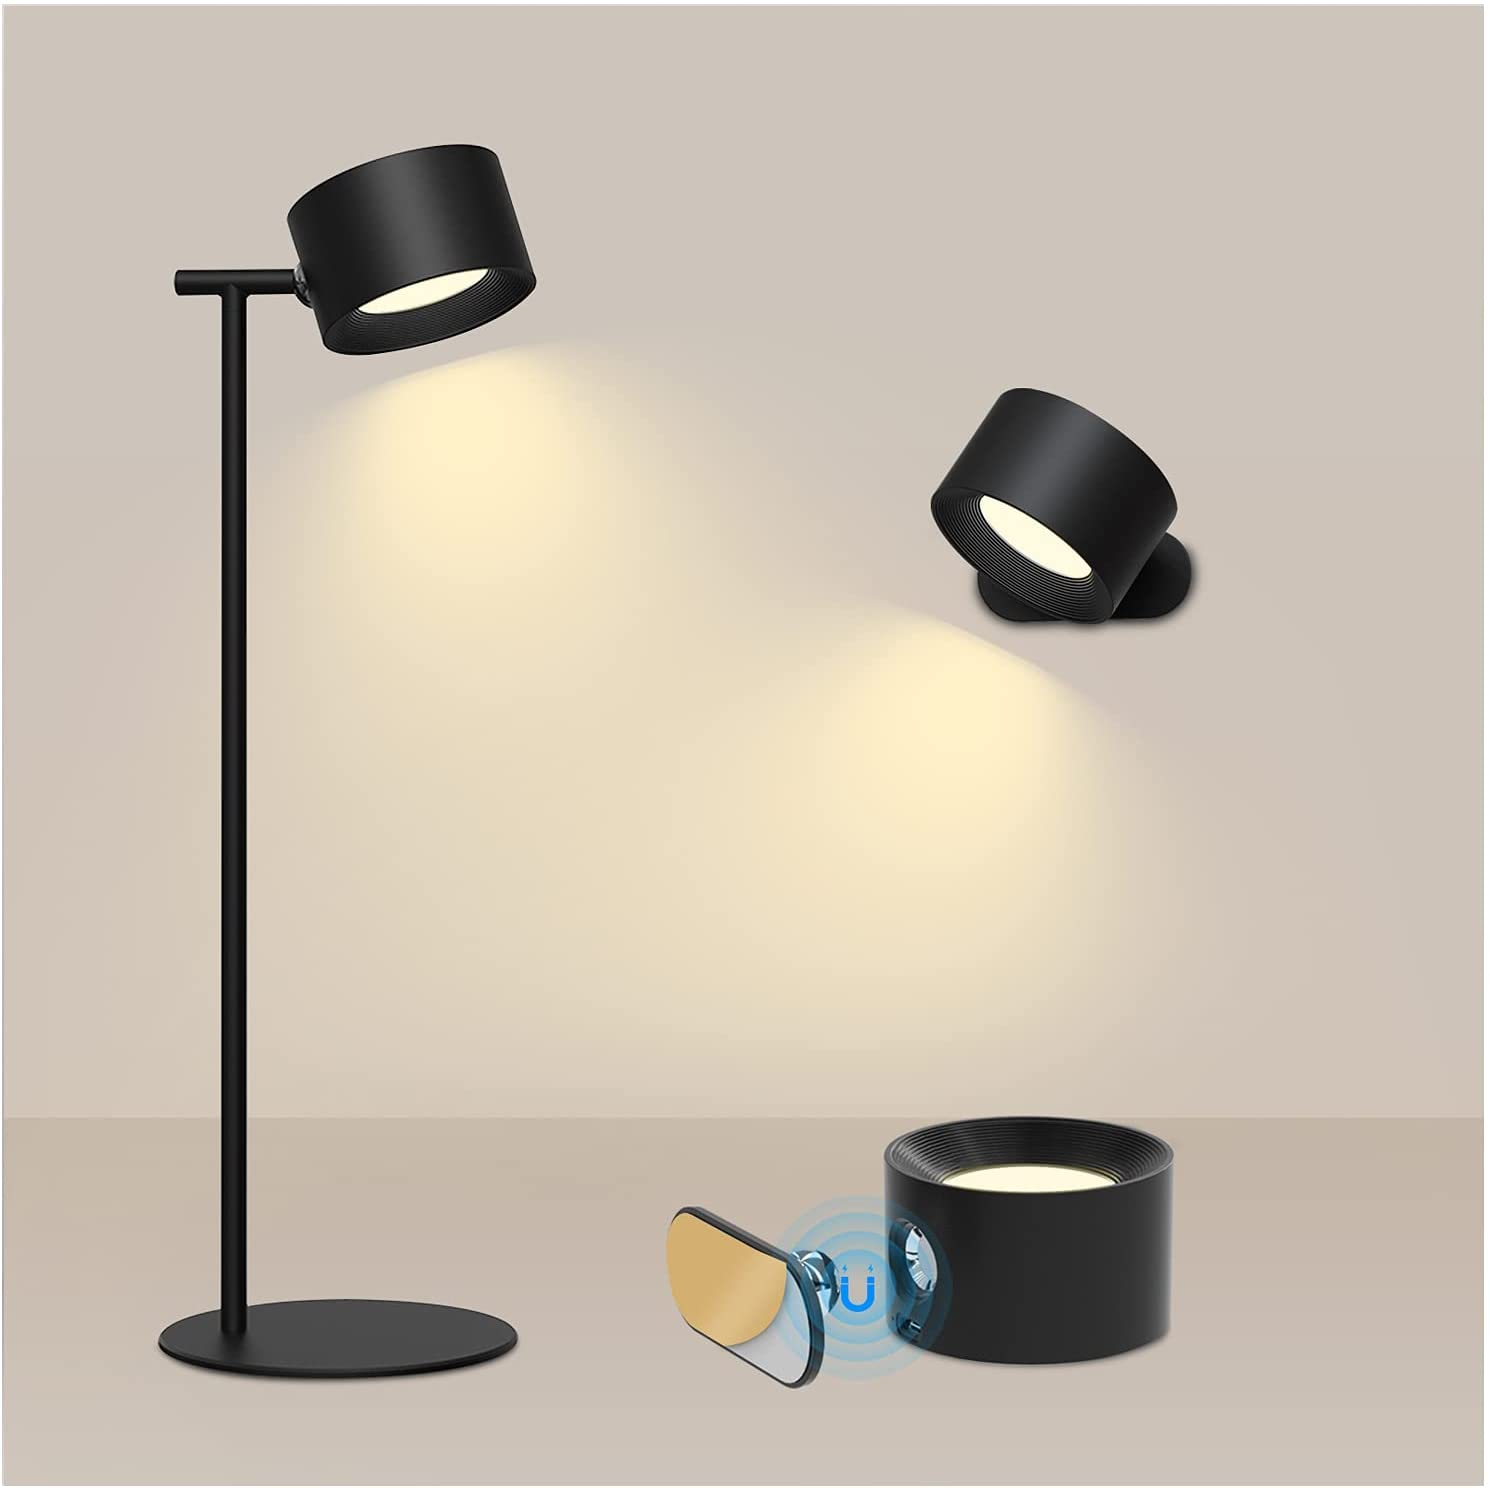 Koopala LED Dealing full price Surprise price reduction Table Lamps Rechargeable lamp Desk with Magneti